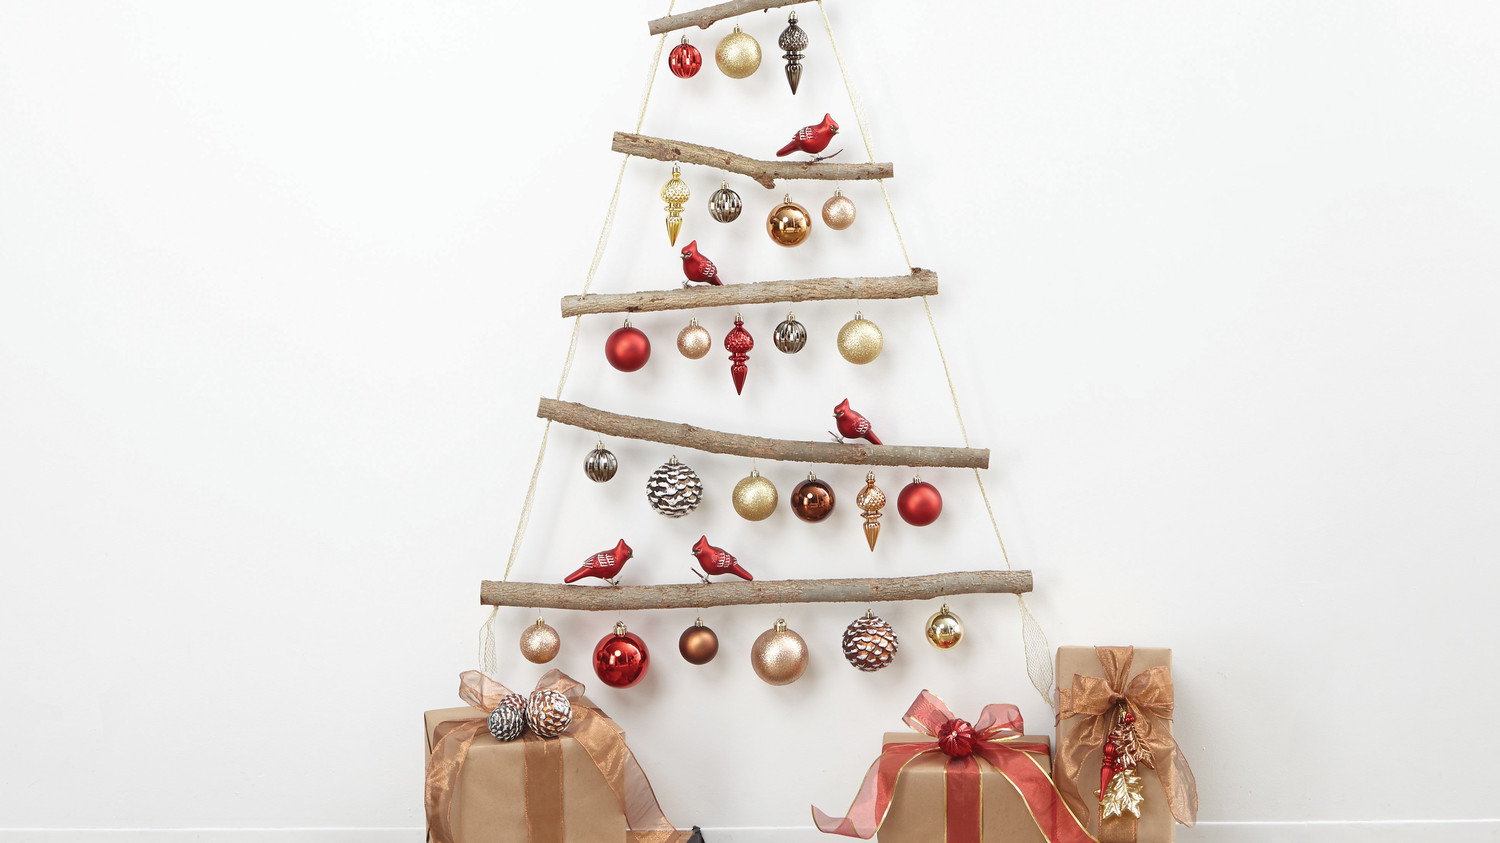 DIY Christmas Tree: How To Make The Ornaments, The